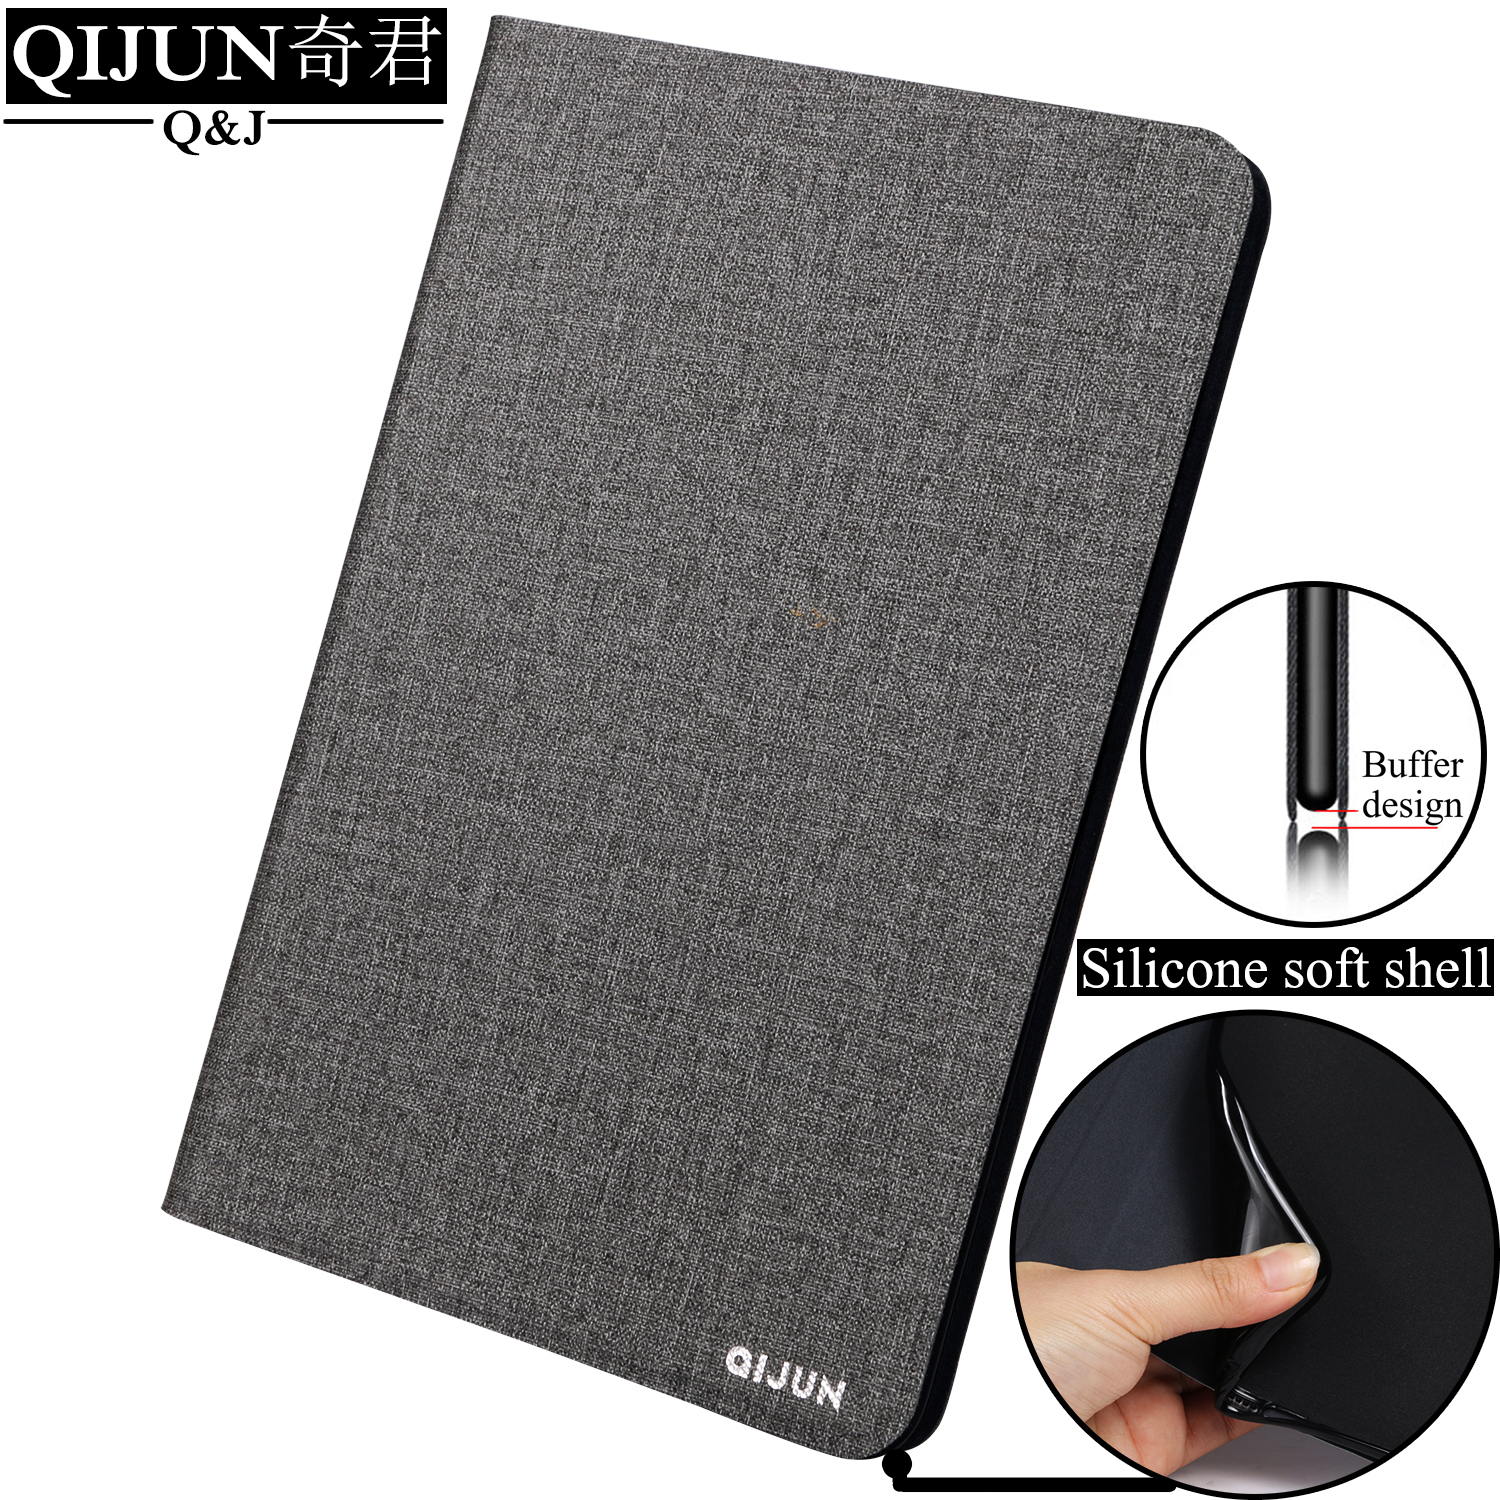 tablet bag flip leather case for Amazon Kindle Fire HDX 7 quot protective Stand Cover Silicone soft shell fundas capa card 2013 2014 in Tablets amp e Books Case from Computer amp Office